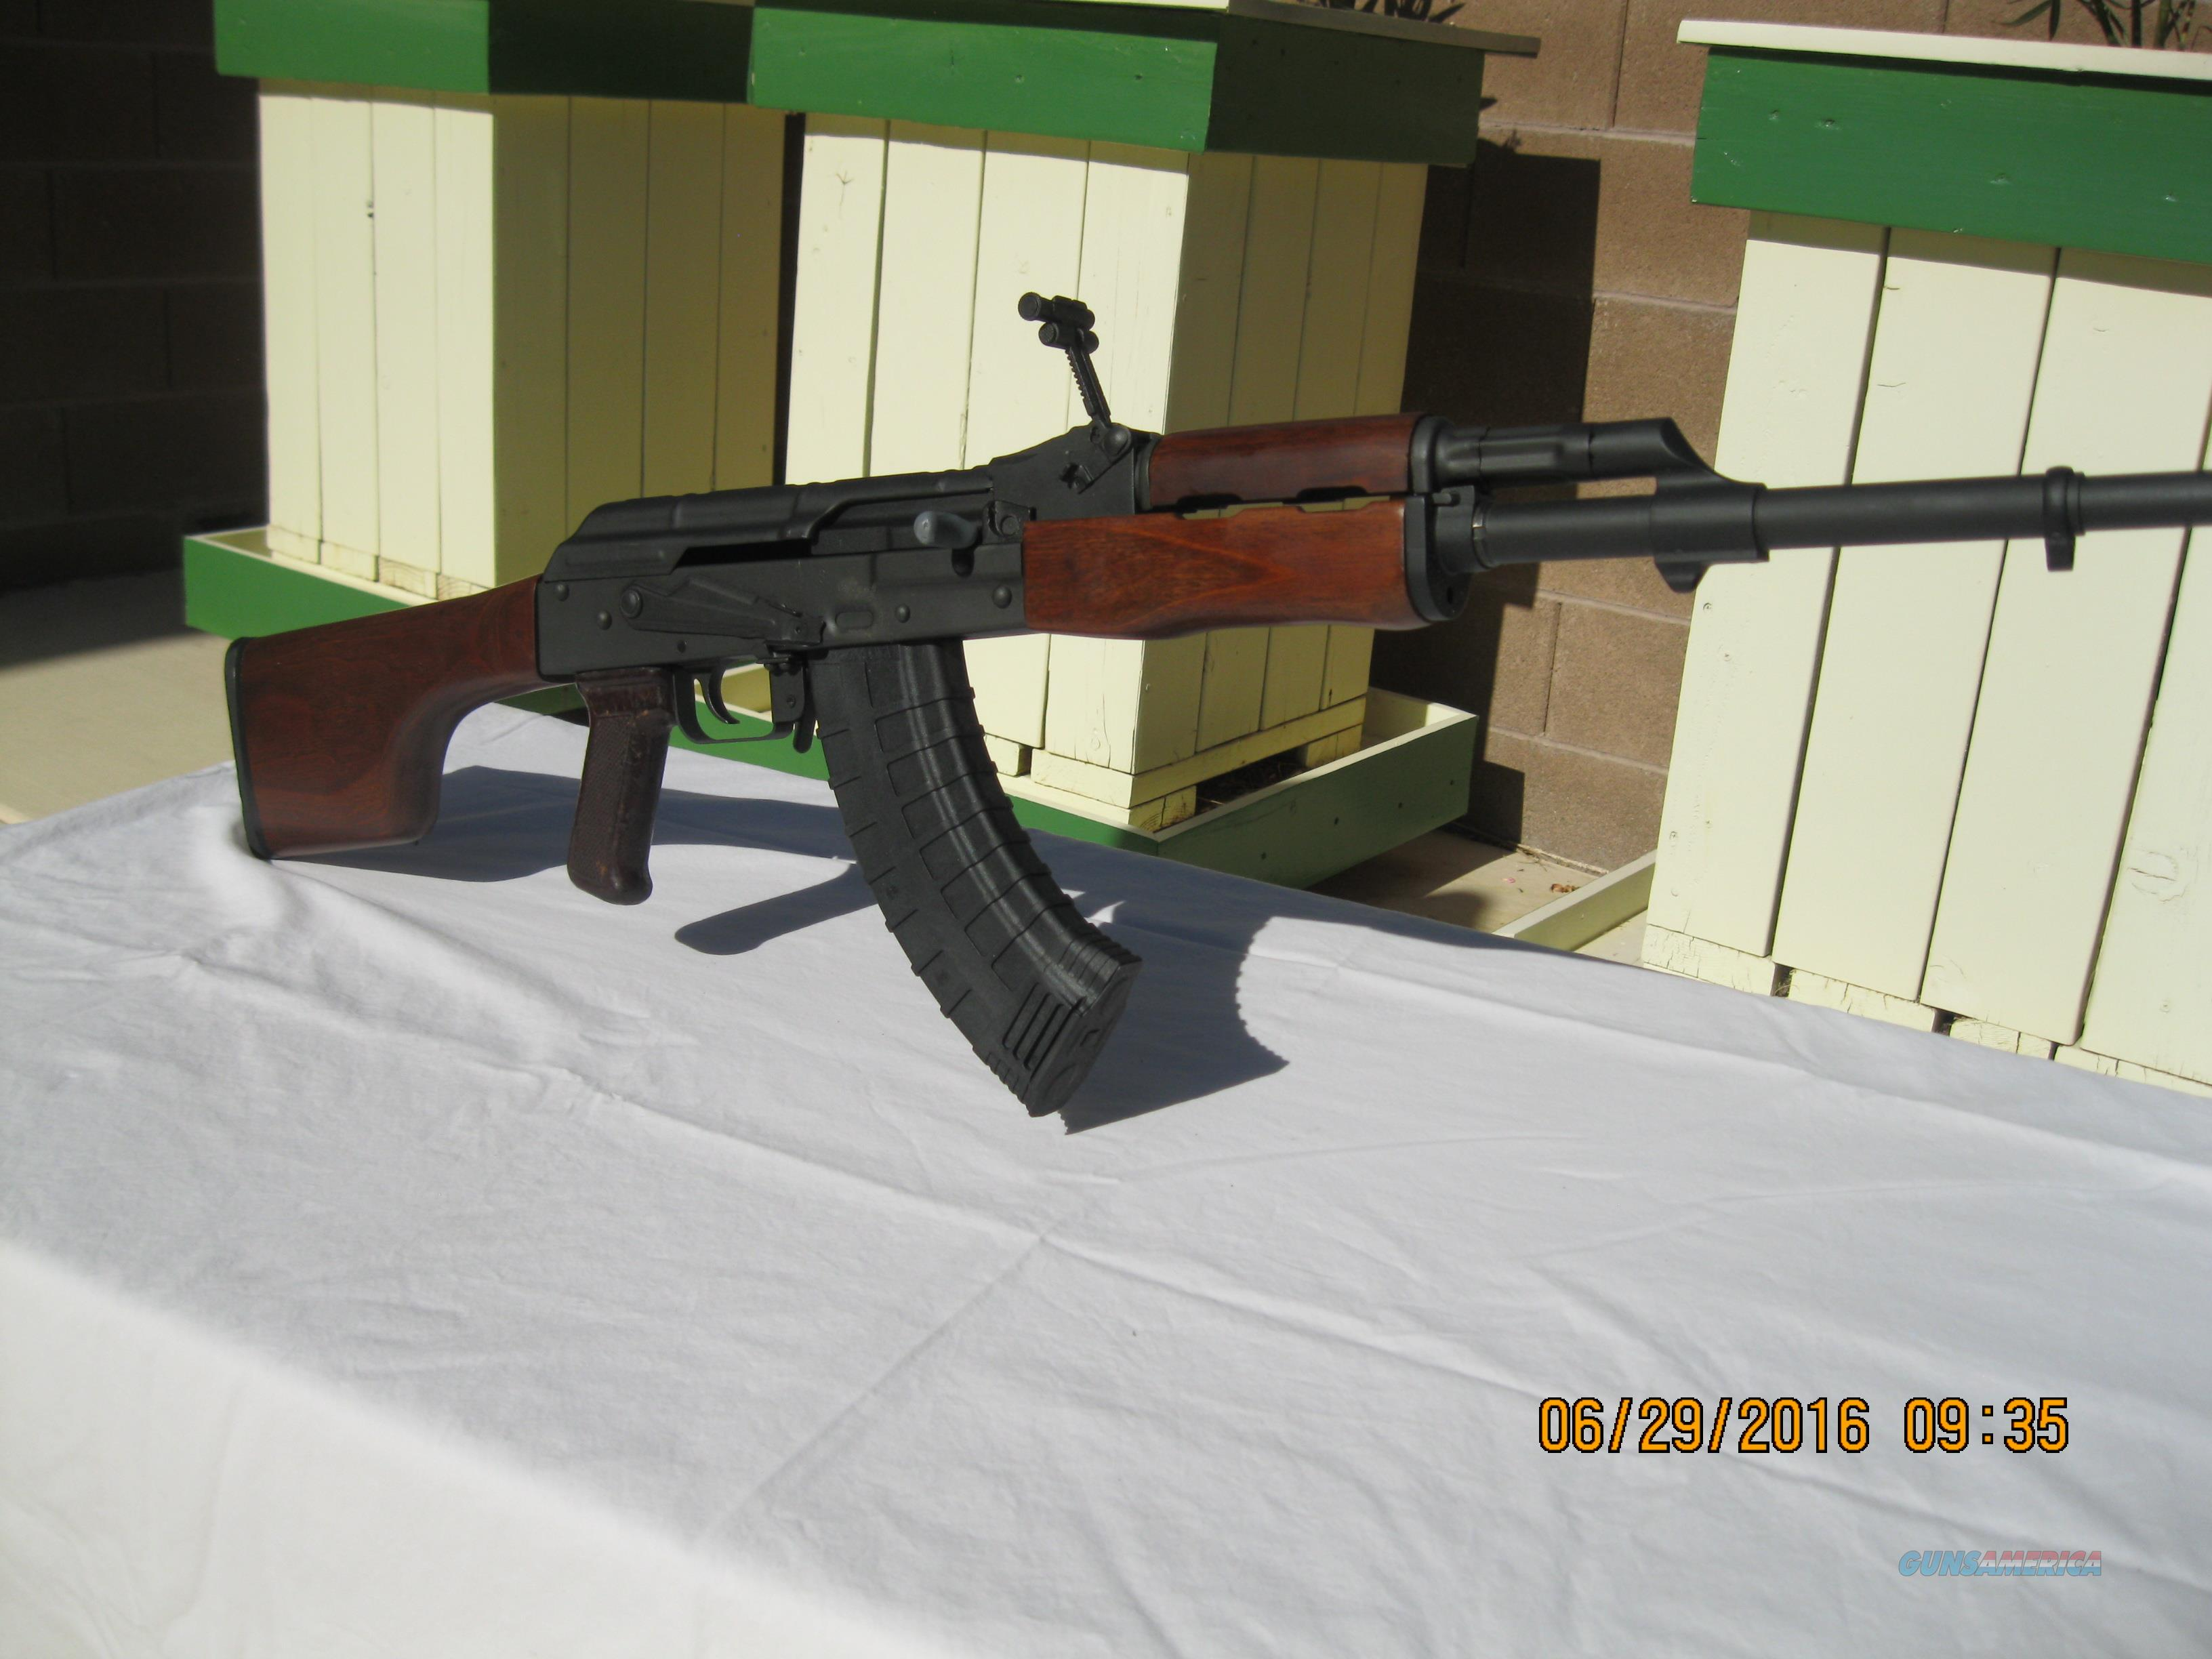 RPK--SOVIET-ERA SQUAD AUTOMATIC WEAPON in 7.62x... for sale